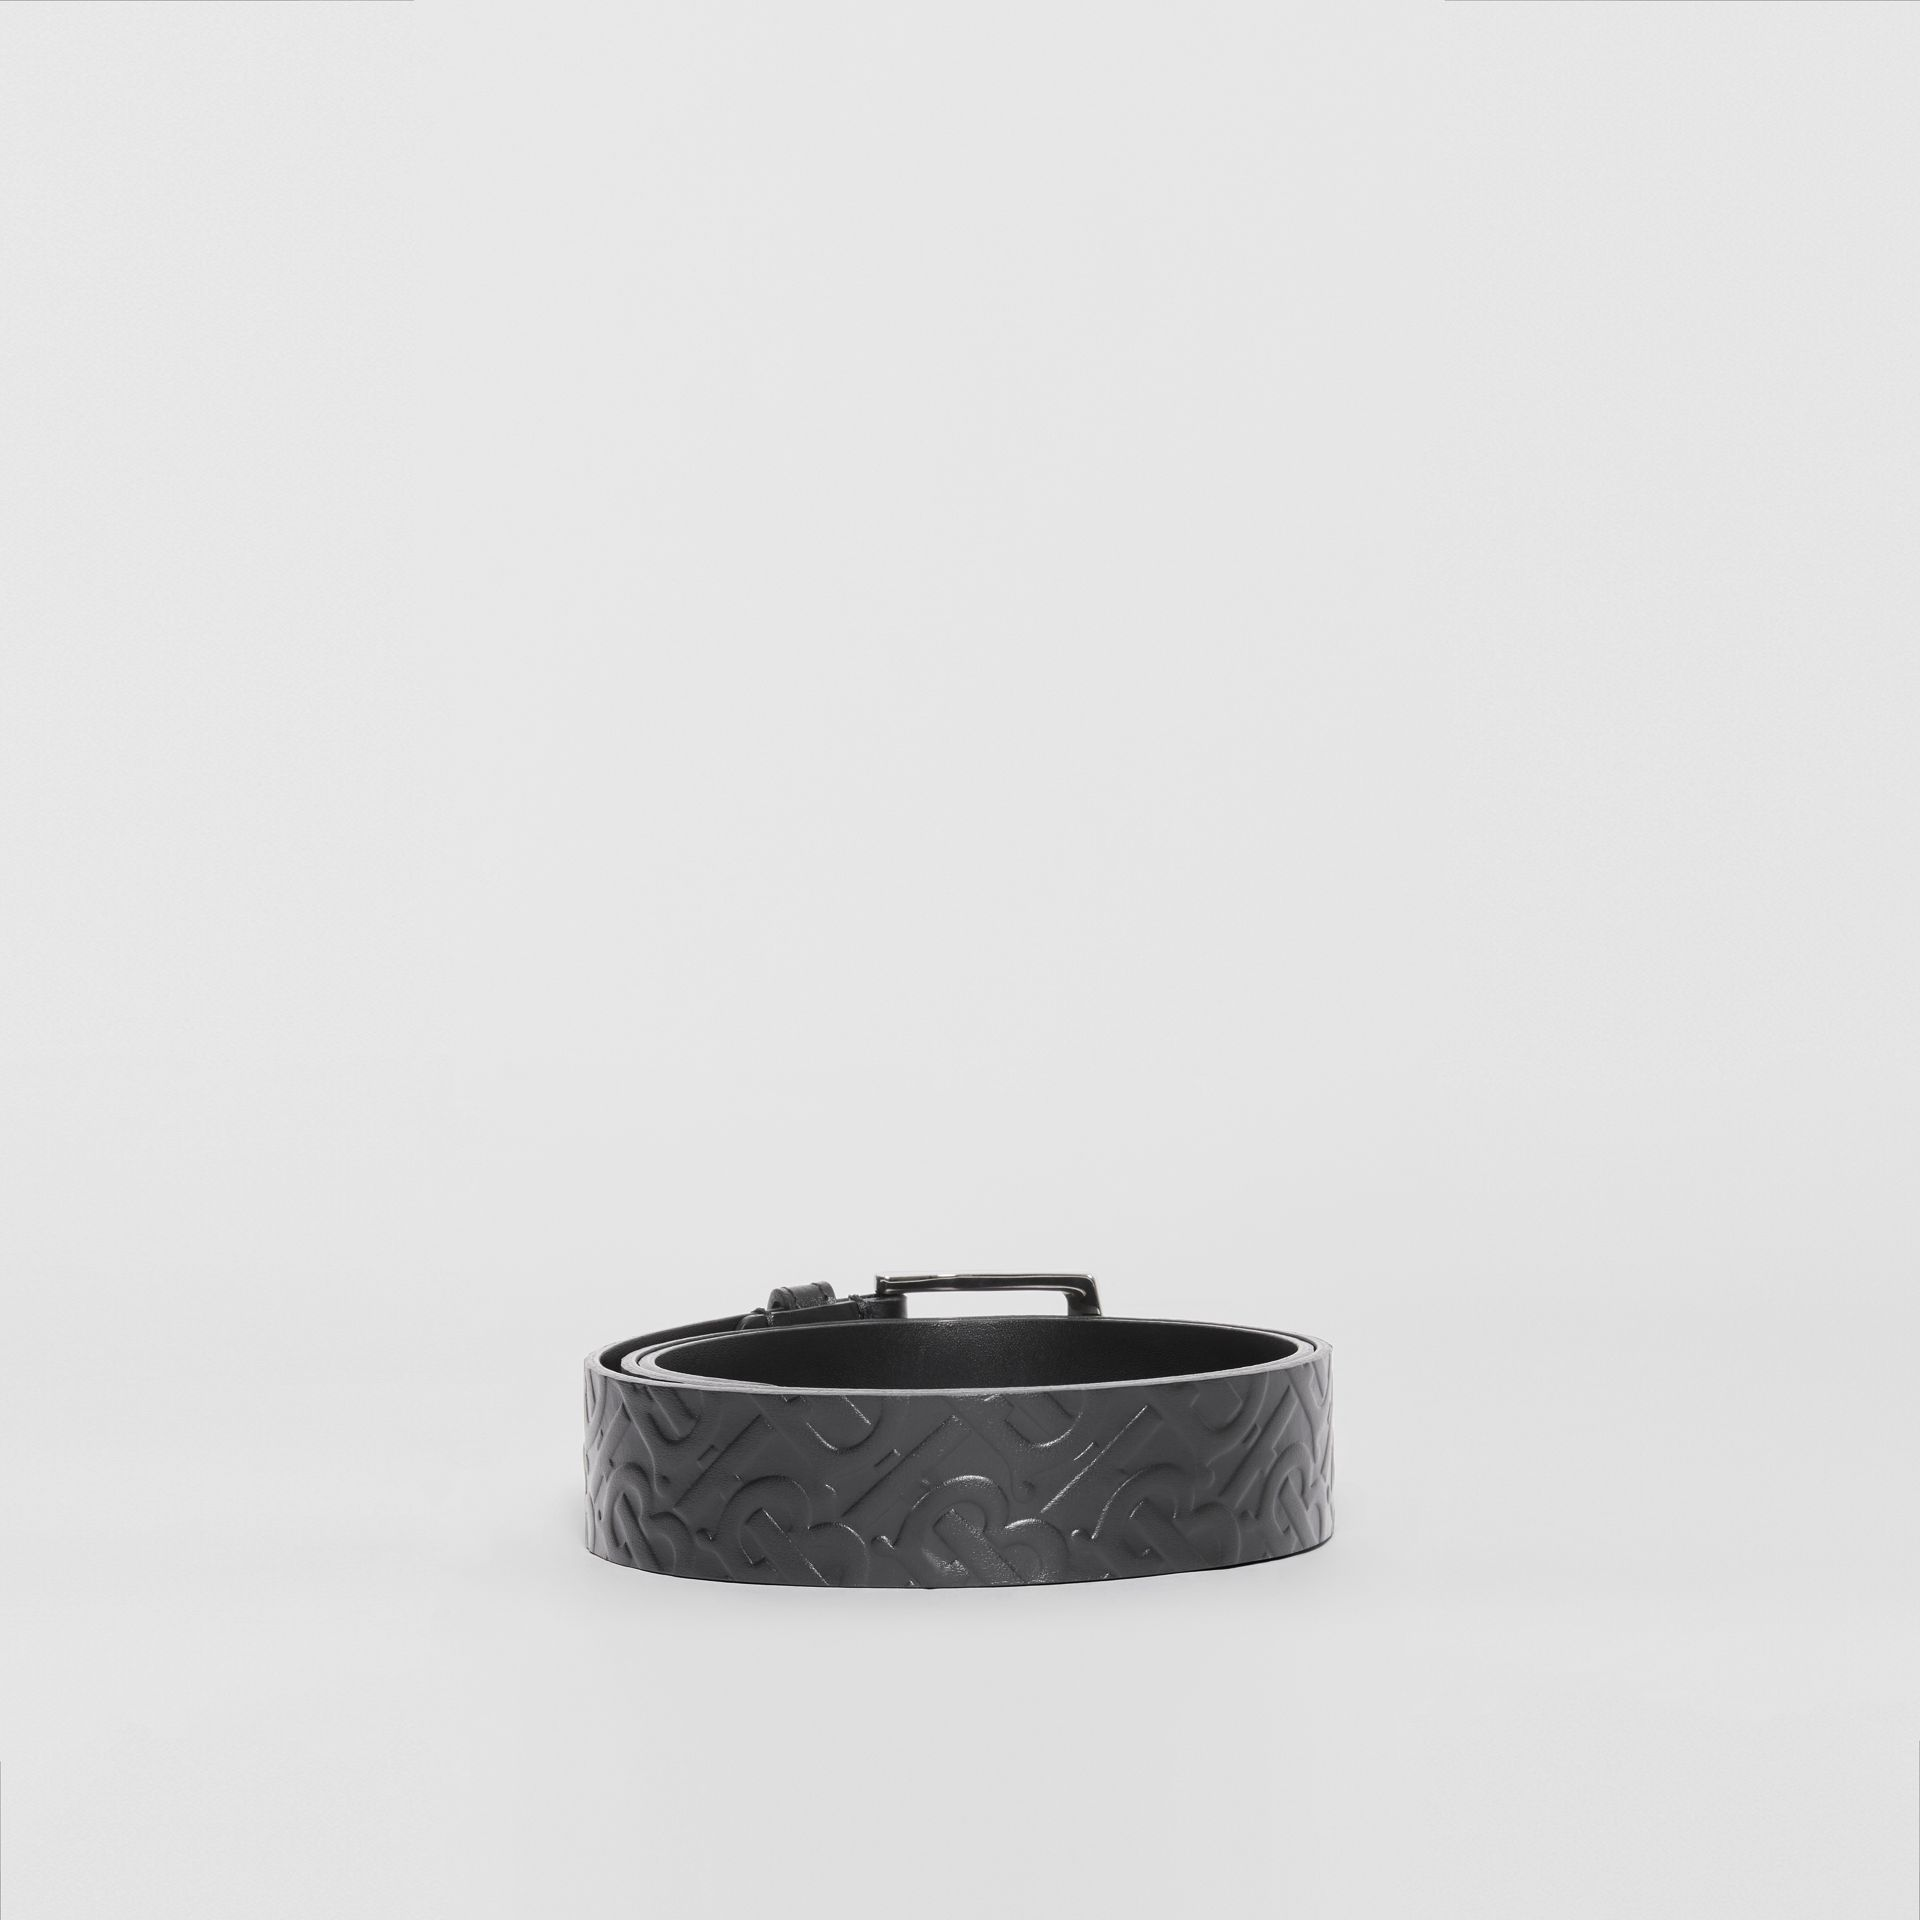 Monogram Leather Belt in Black - Men | Burberry Australia - gallery image 4